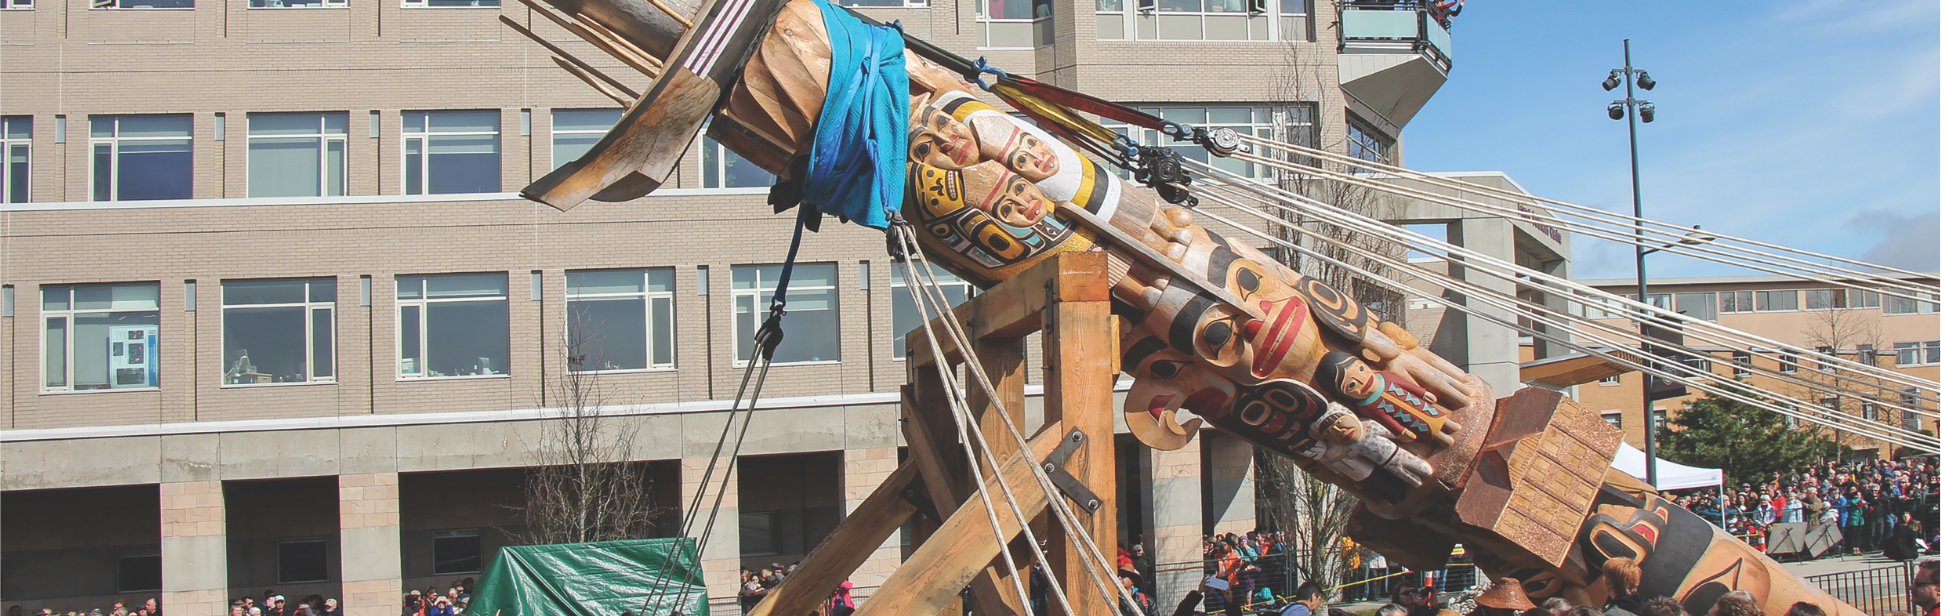 Photo of the raising of Reconciliation Pole. The pole is resting on supports with ropes attached to it.